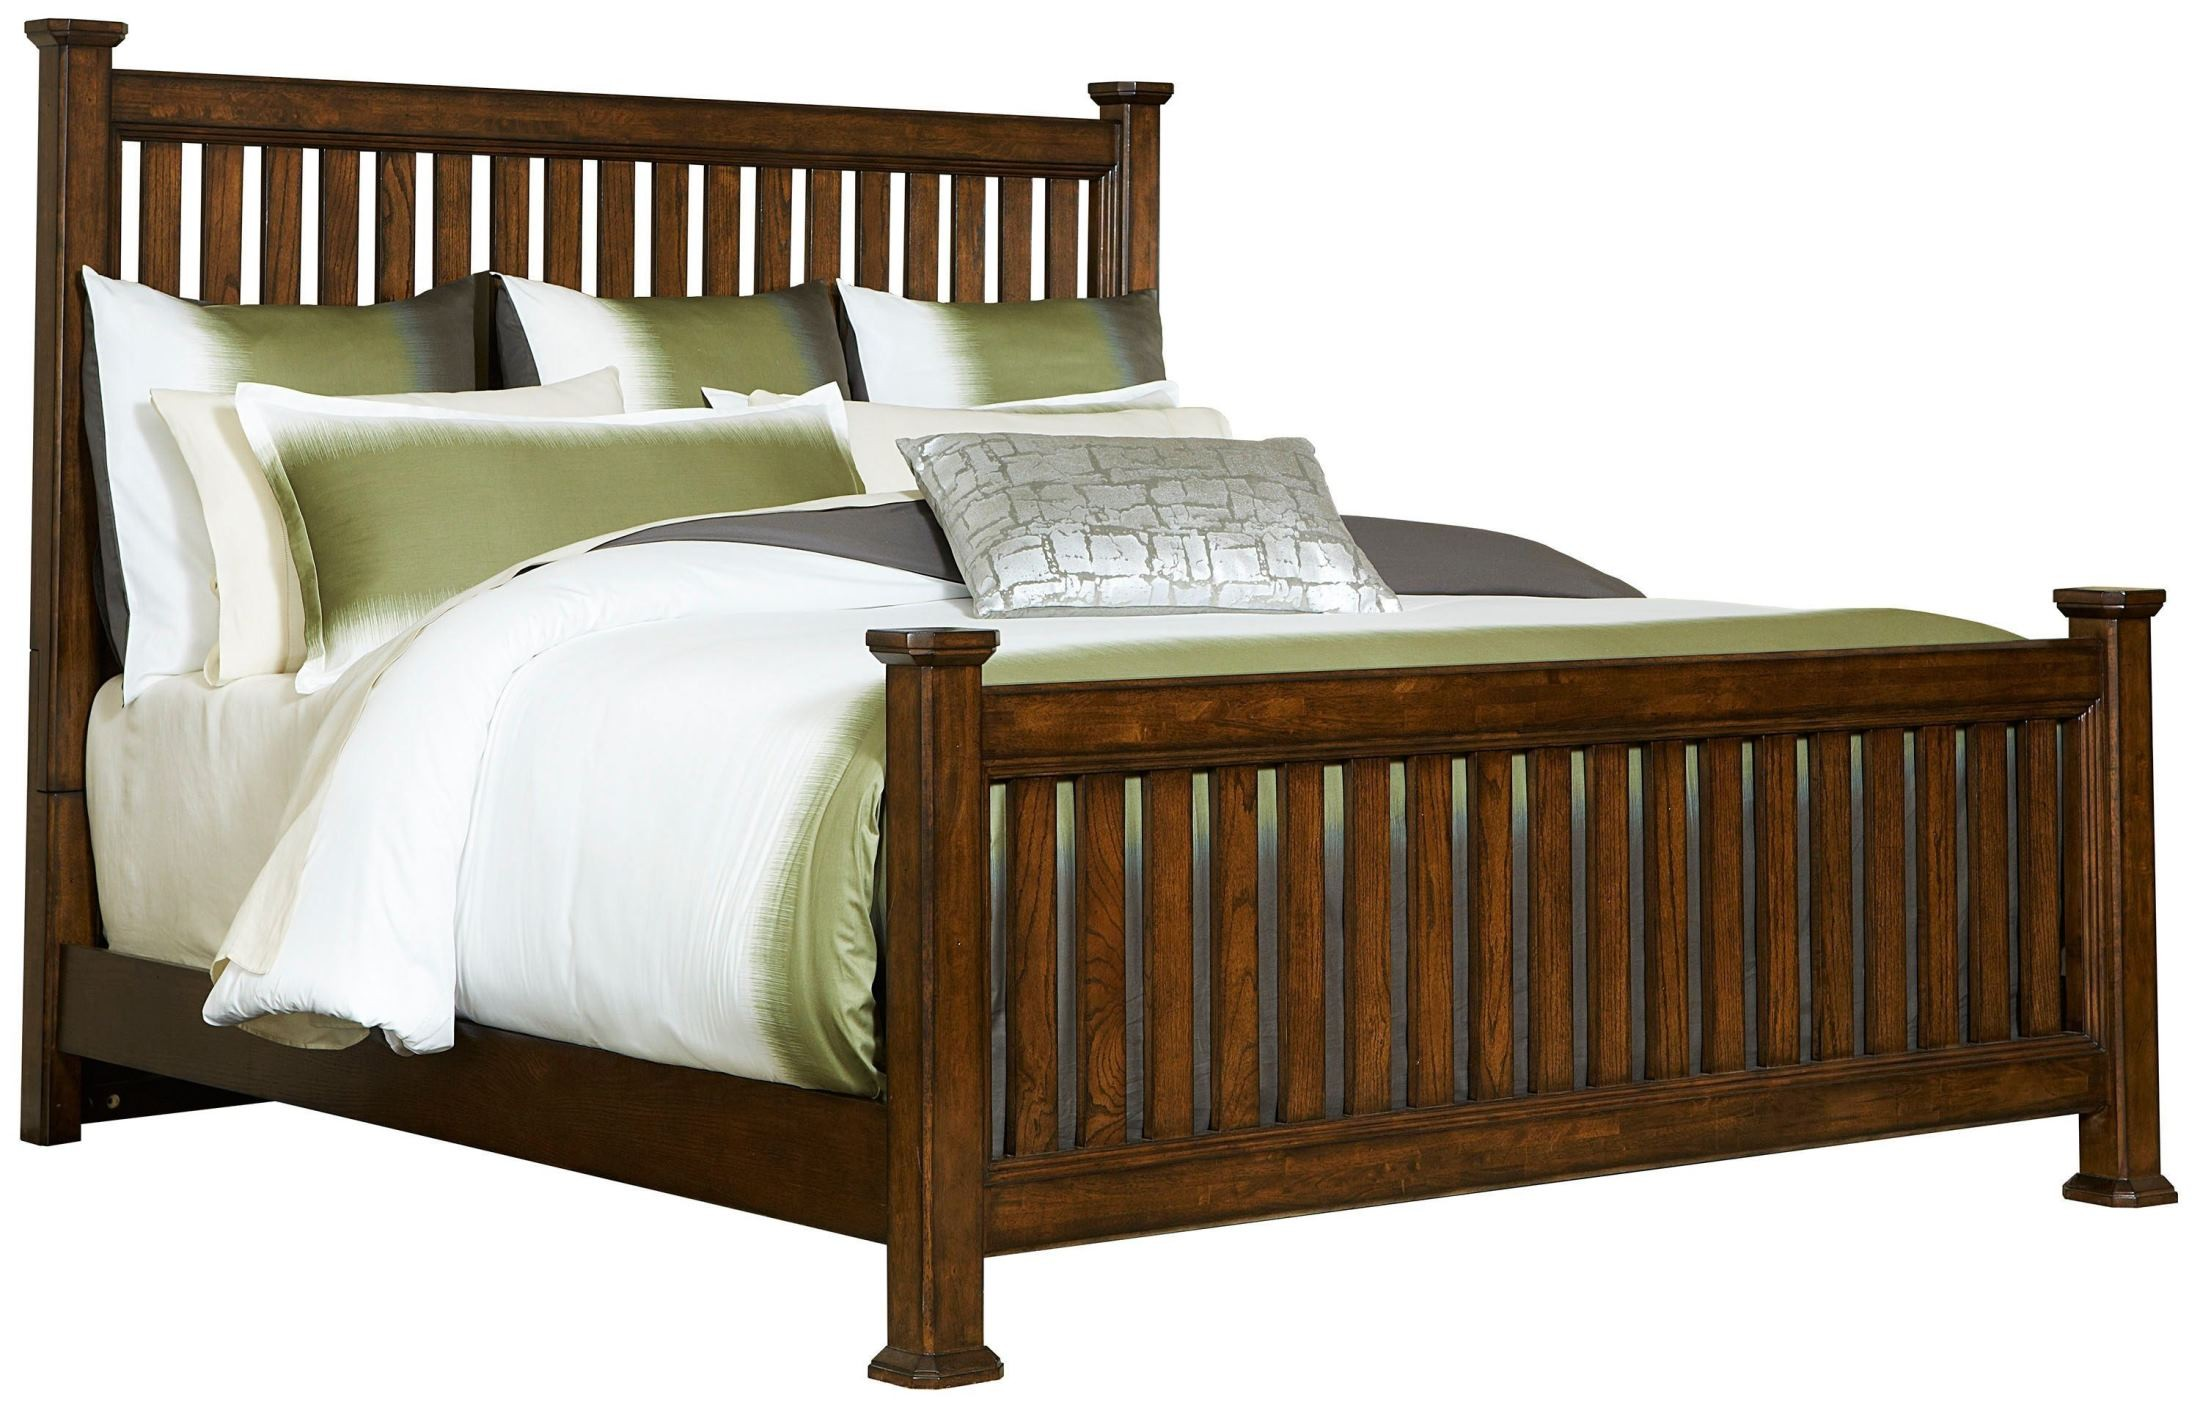 Estes Park Cal King Slat Poster Bed From Broyhill 4364